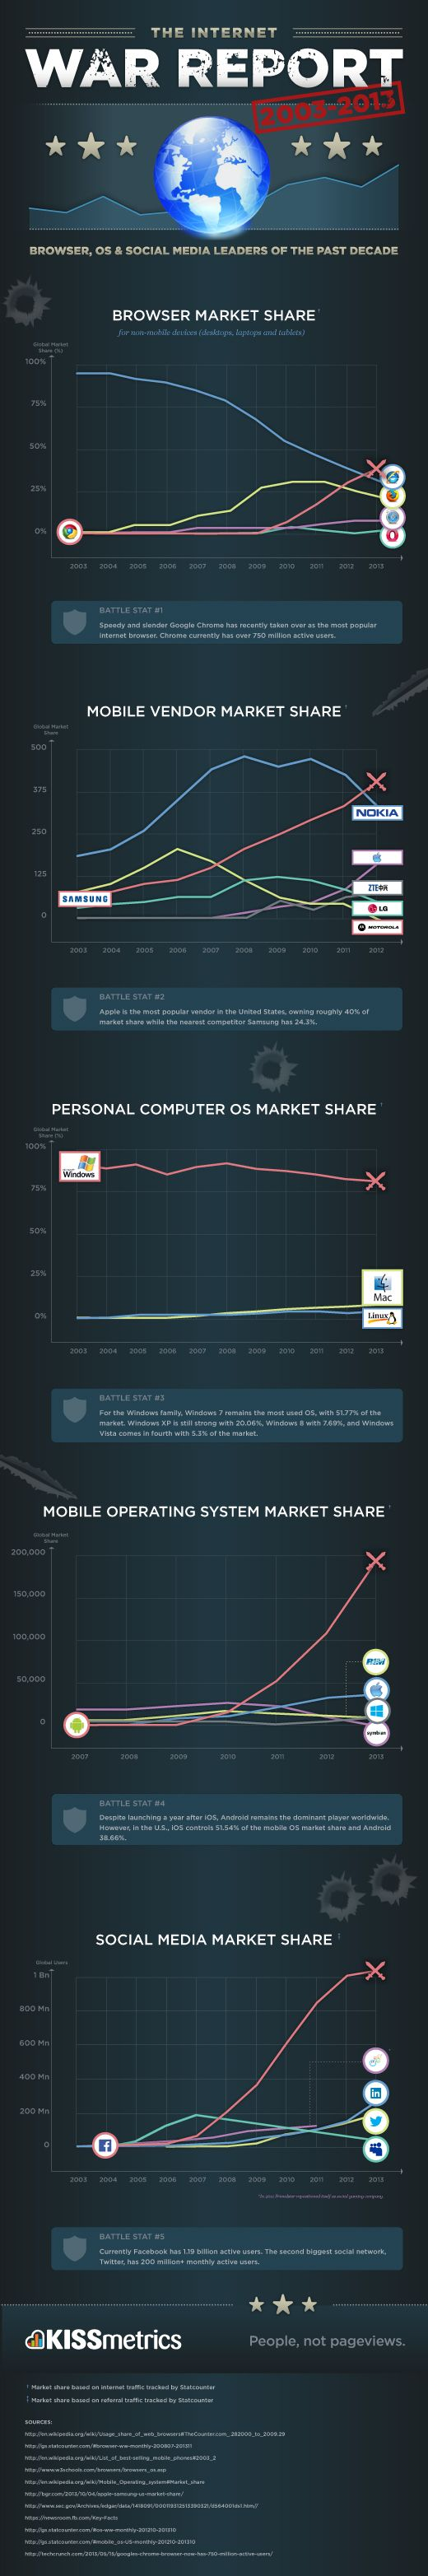 Infographic: Social Media, OS & Browser Leaders of the Past Decade